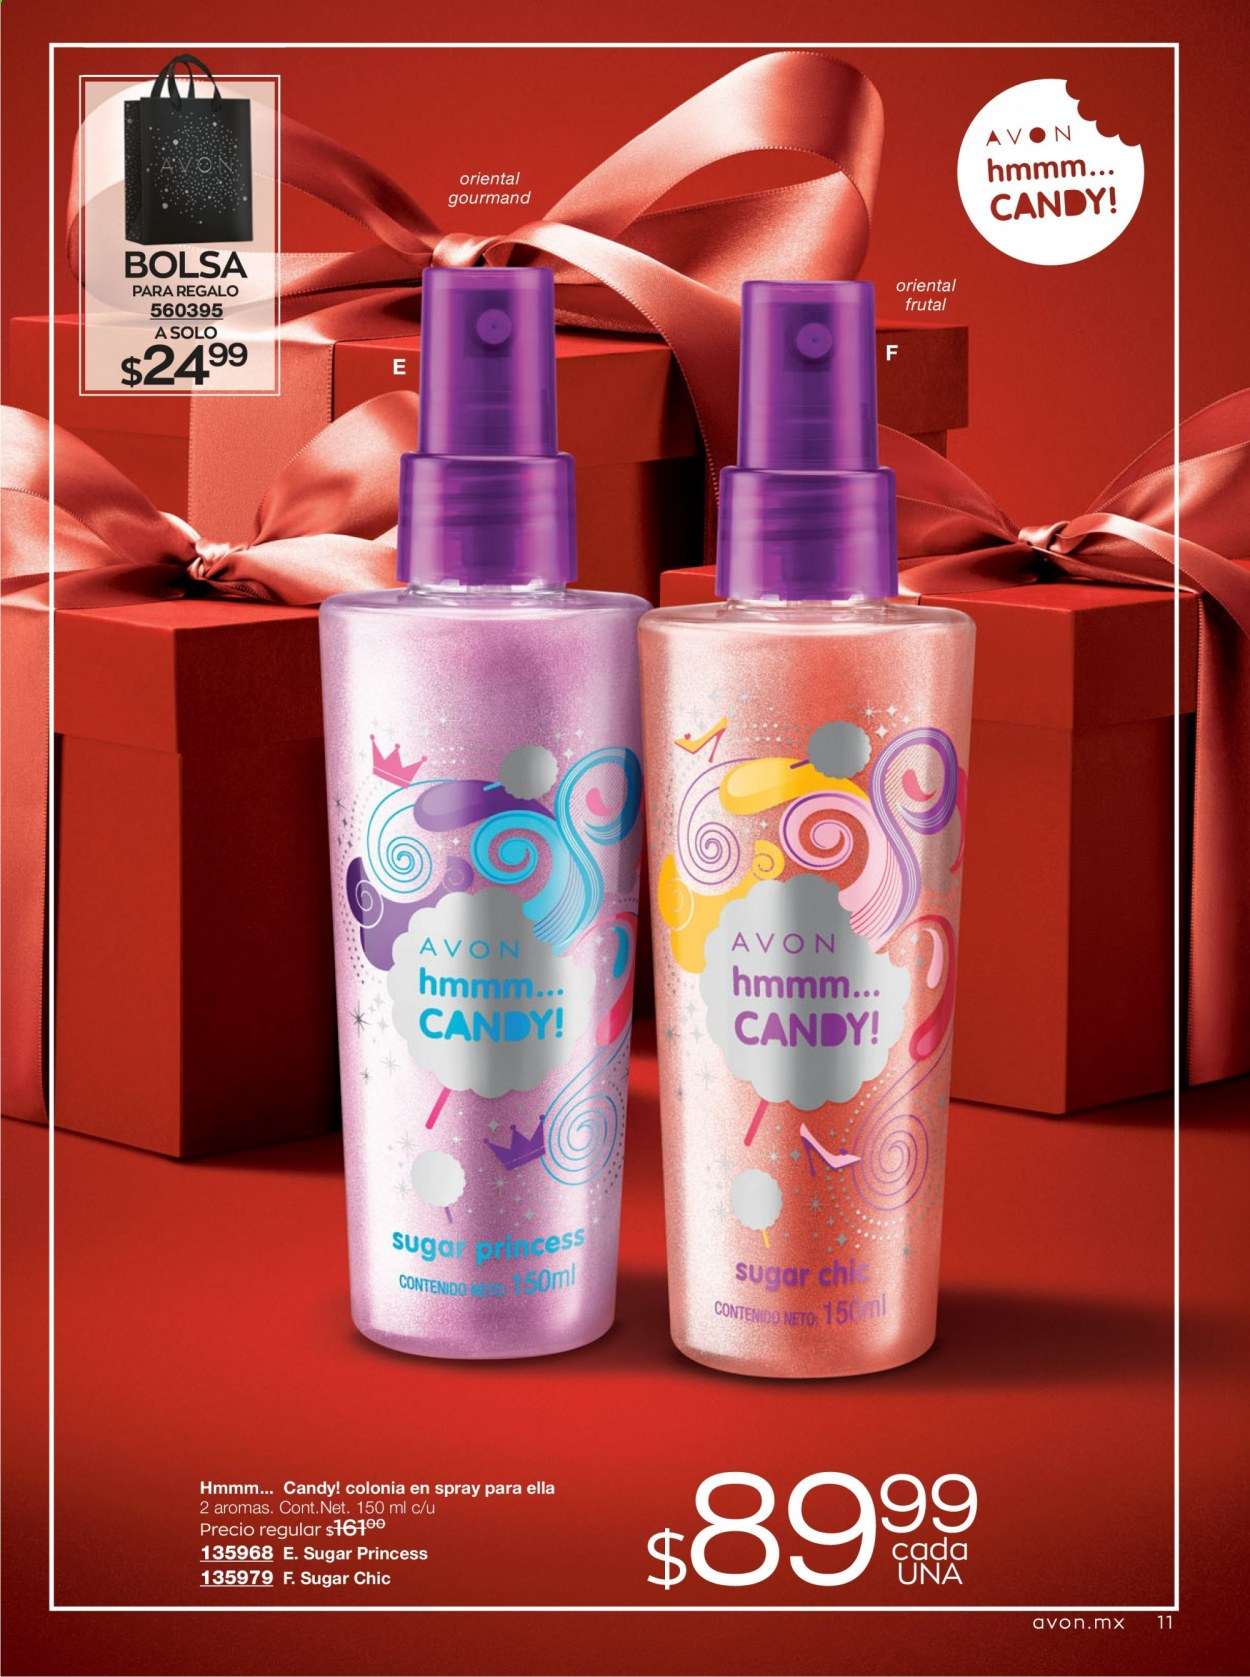 Folleto actual Avon - 7.11.2020 - 9.12.2020 - Ventas - candy, regalo. Página 11.